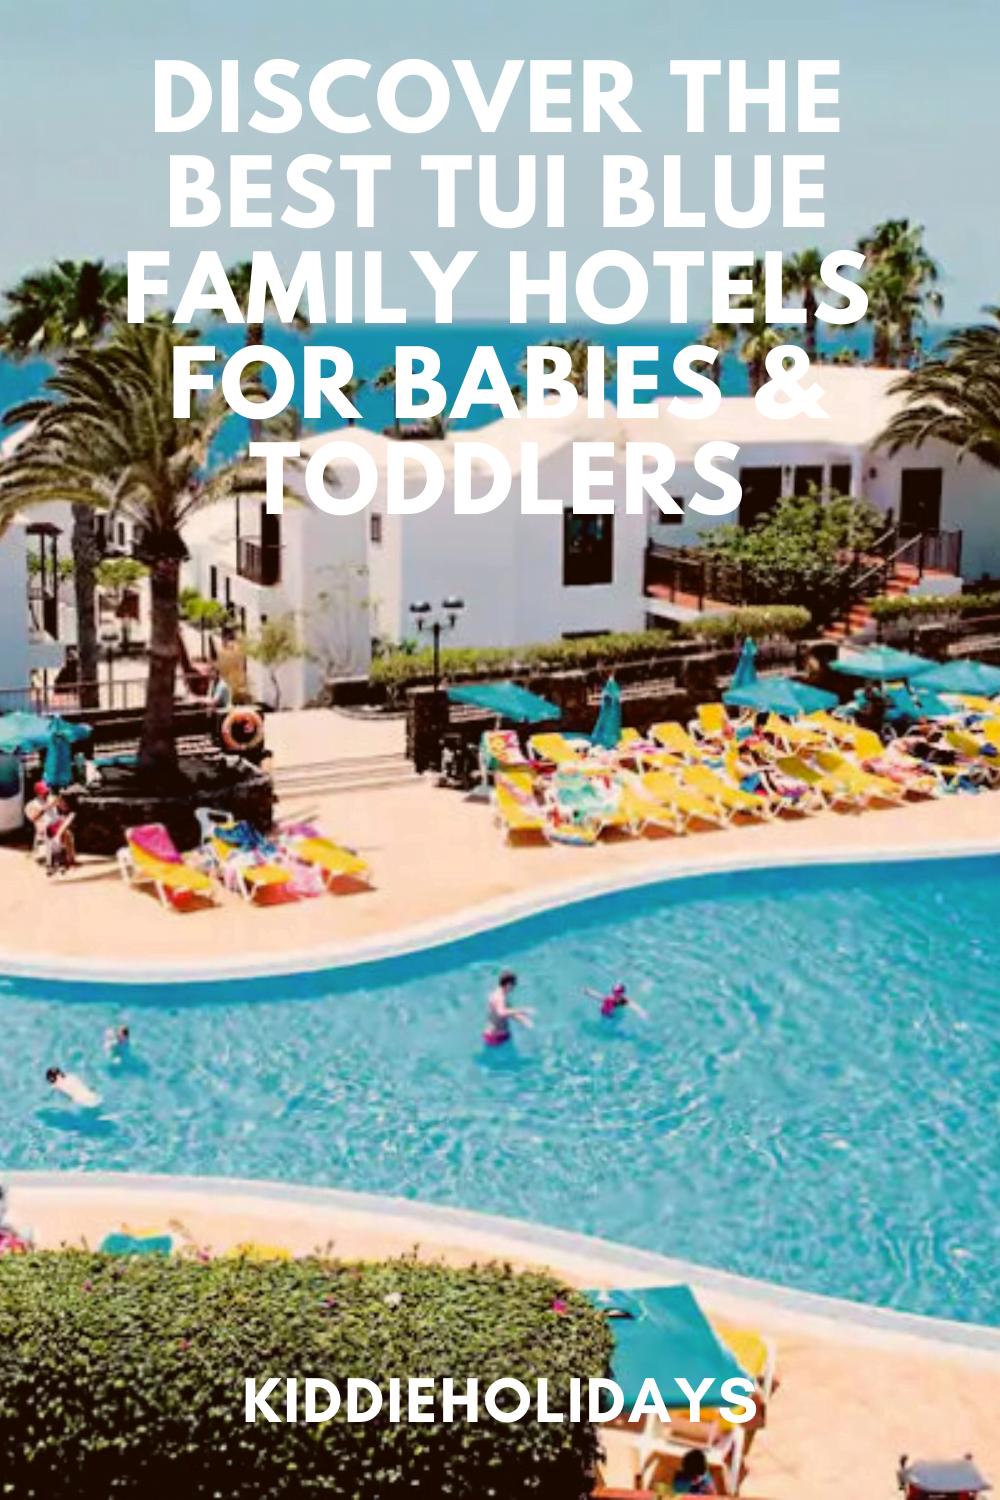 best tui blue hotels for babies and toddlers